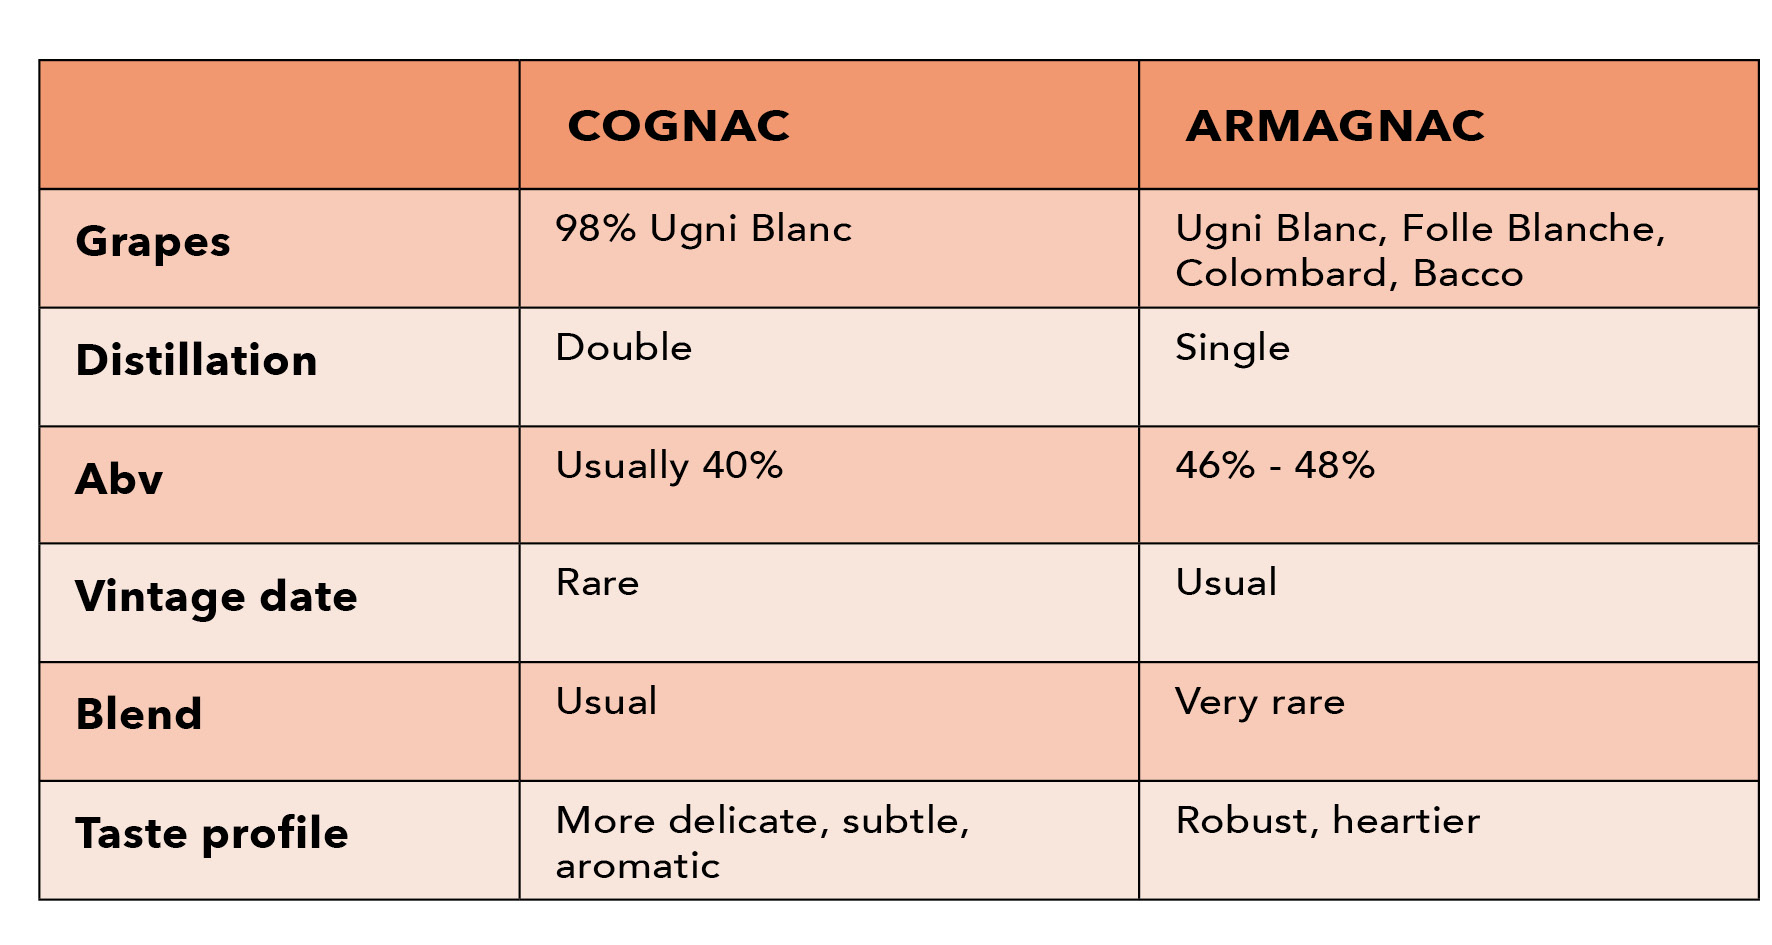 Differences between Cognac and Armagnac